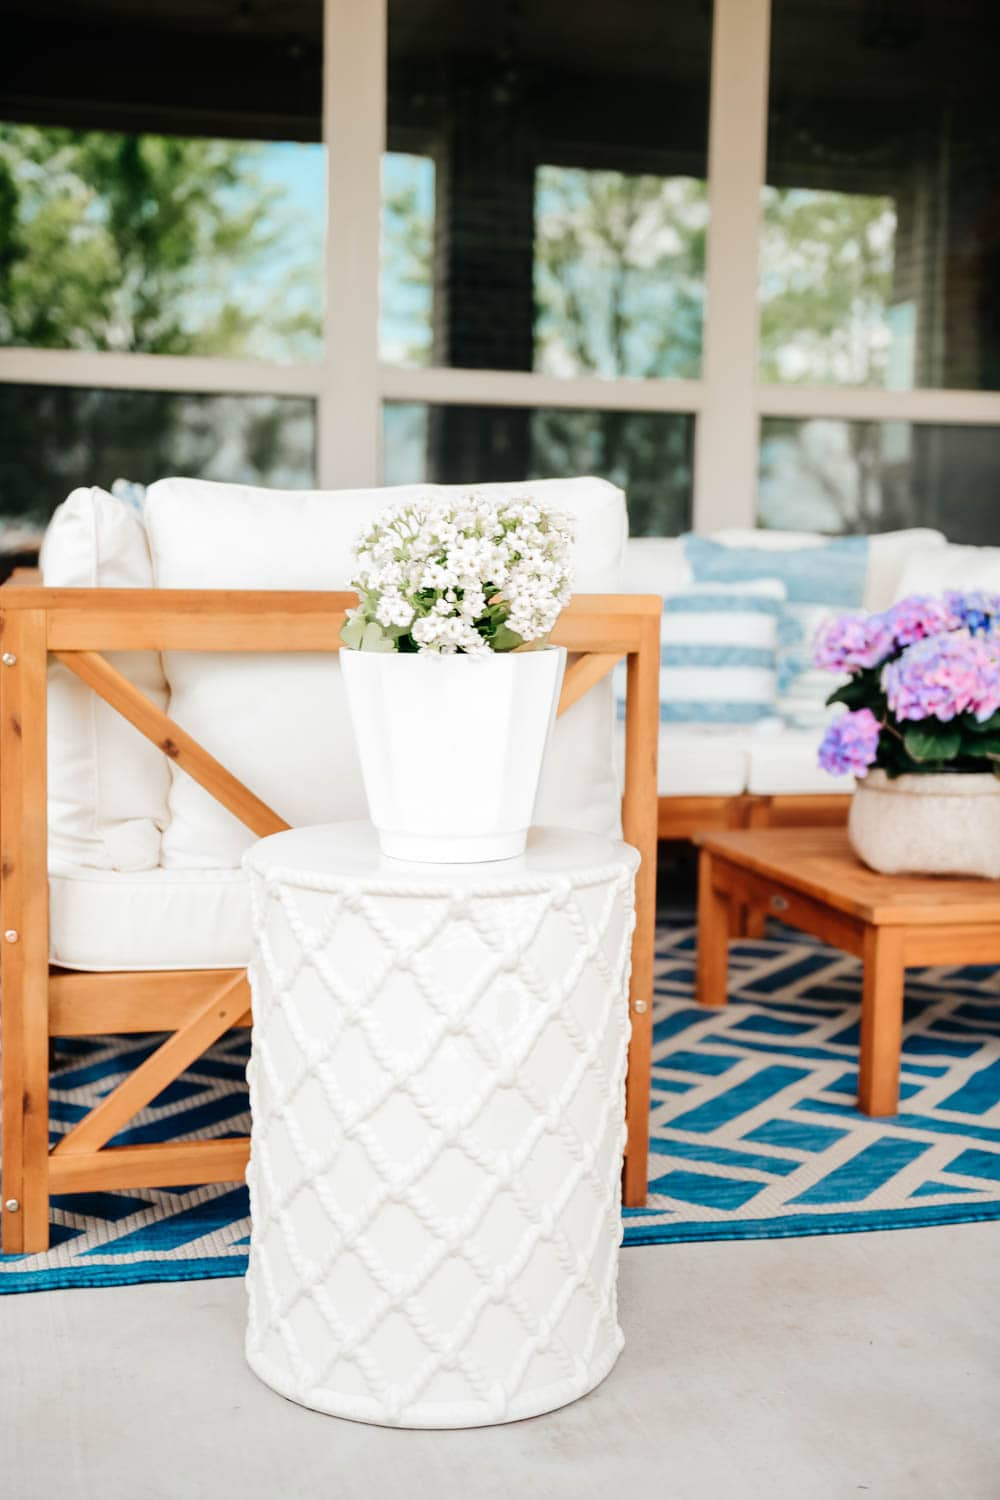 Summer patio sectional, outdoor table, outdoor television, outdoor seating ideas. #ABlissfulNest #summerpatio #patiodecor